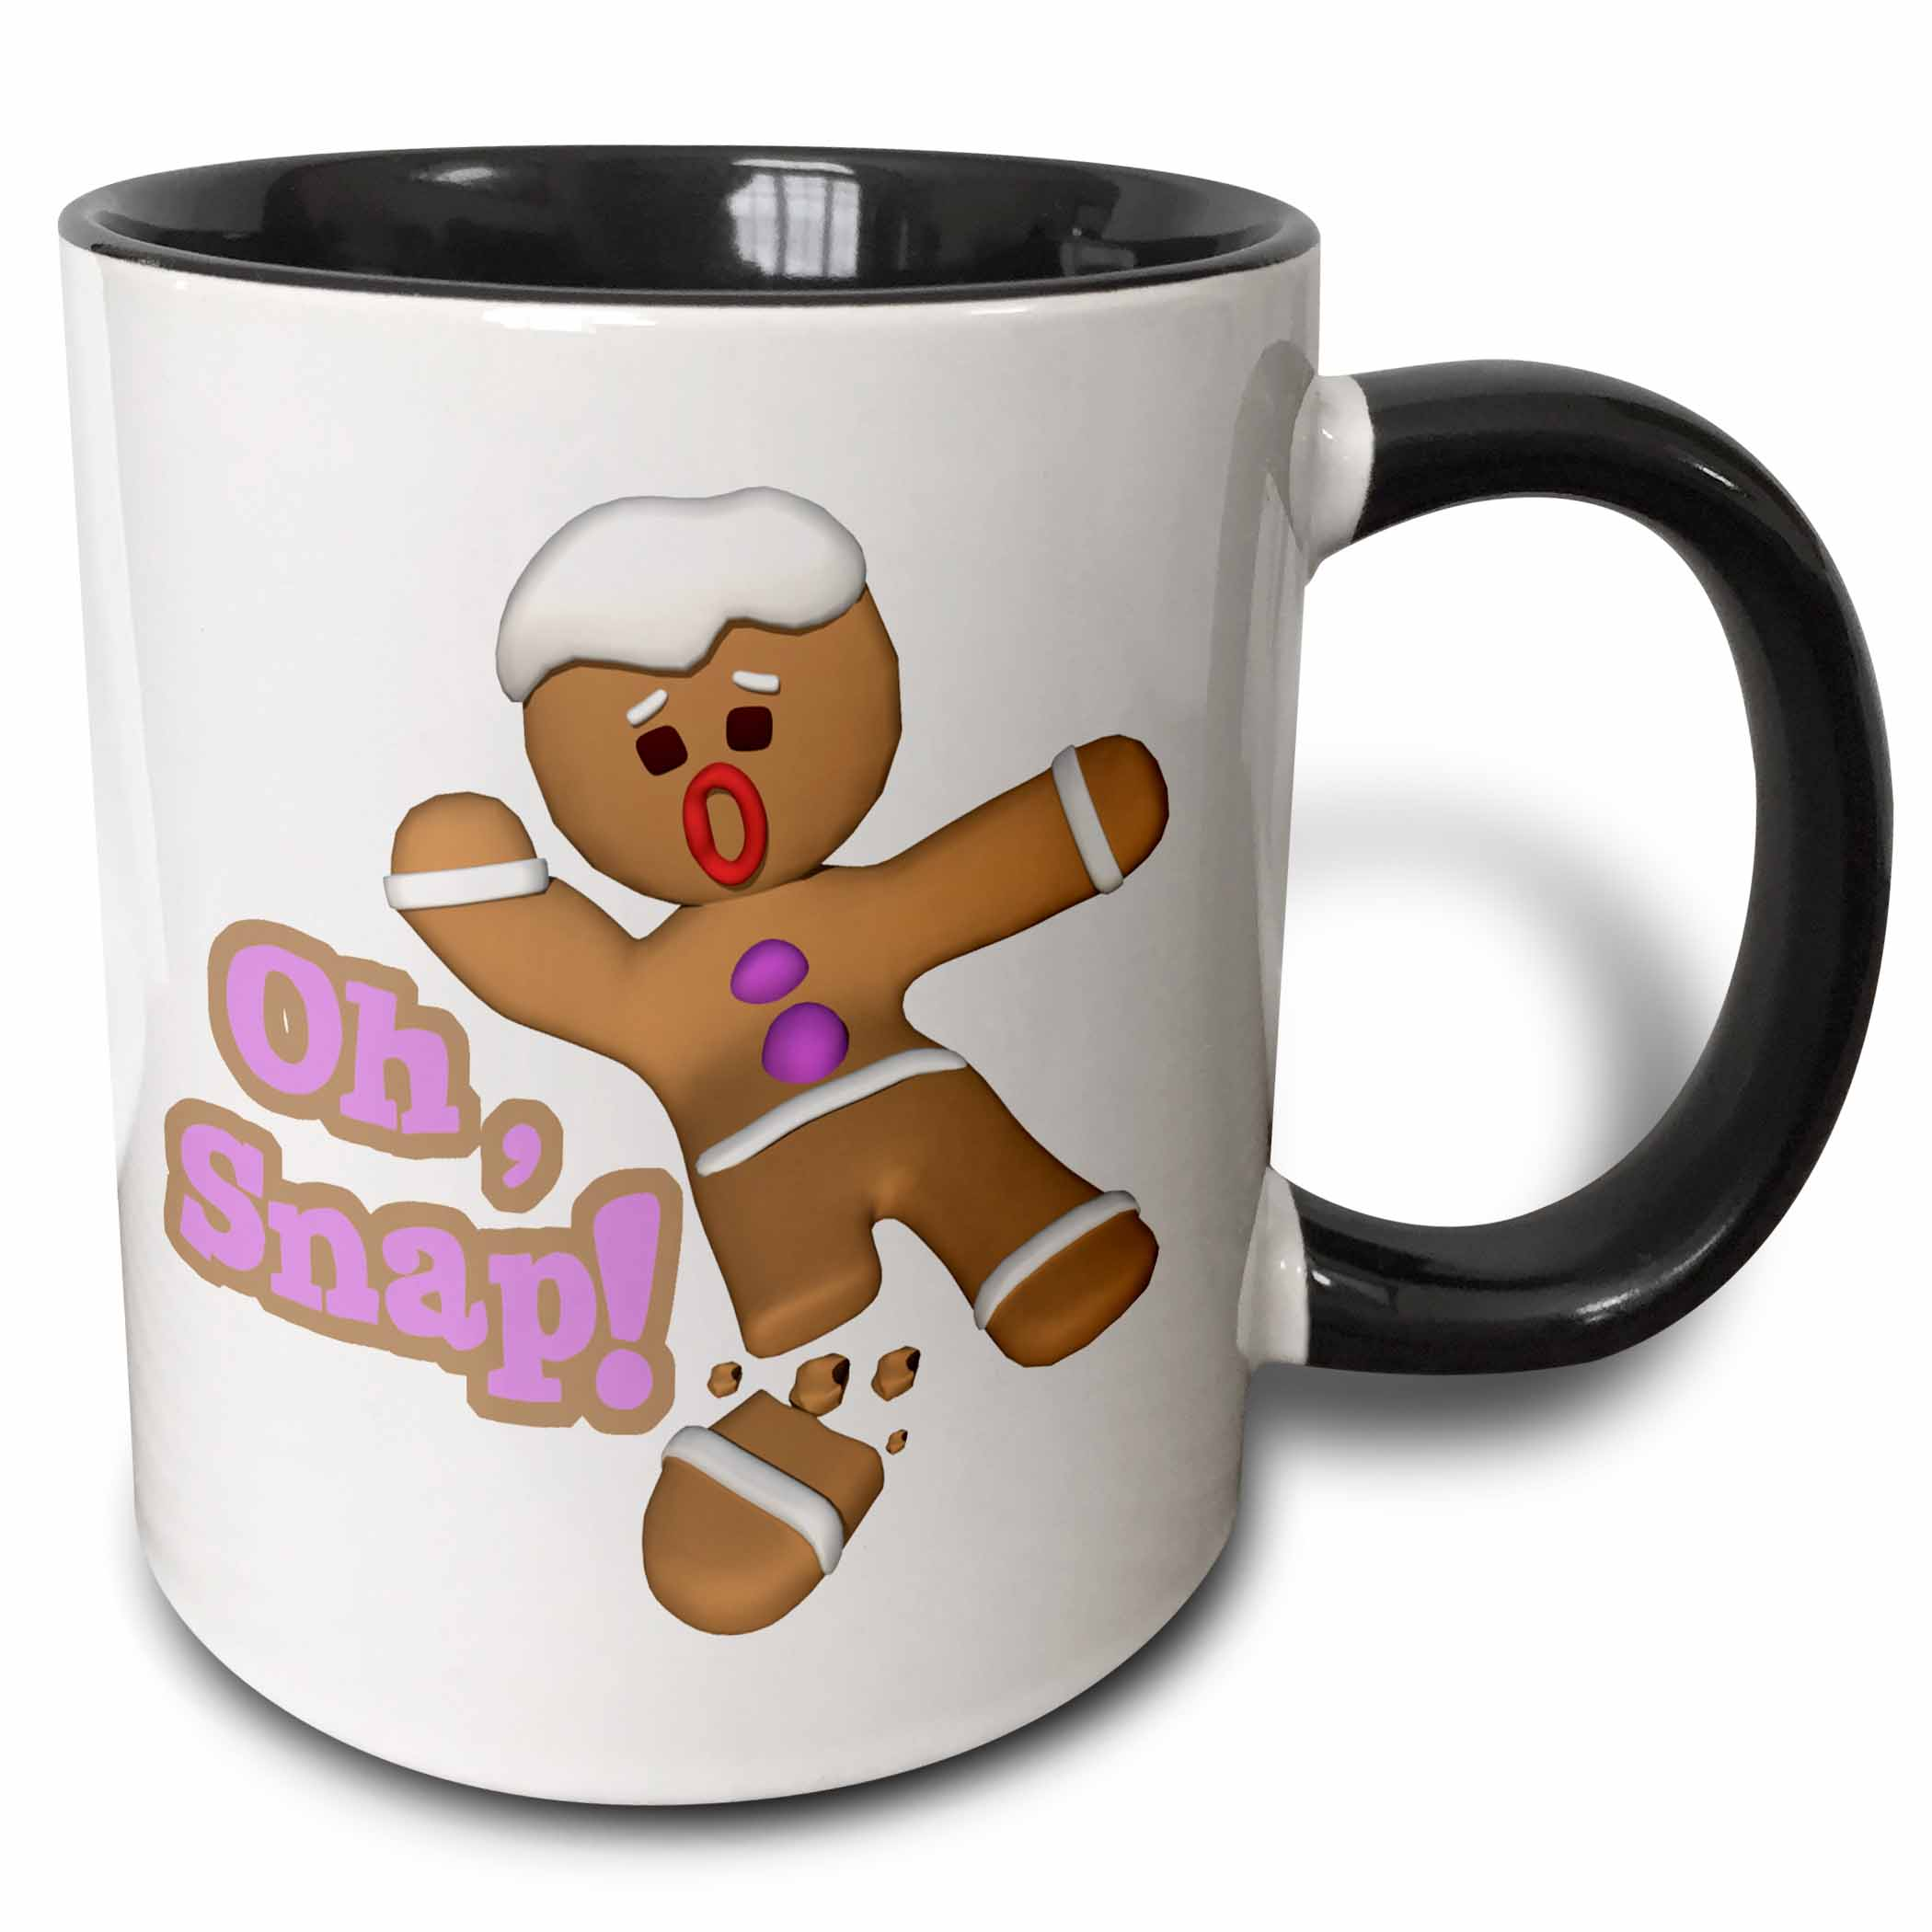 3dRose Funny Oh Snap Broken Snapped Gingerbread Man Cookie Holiday Christmas Humor - Two Tone Black Mug, 11-ounce